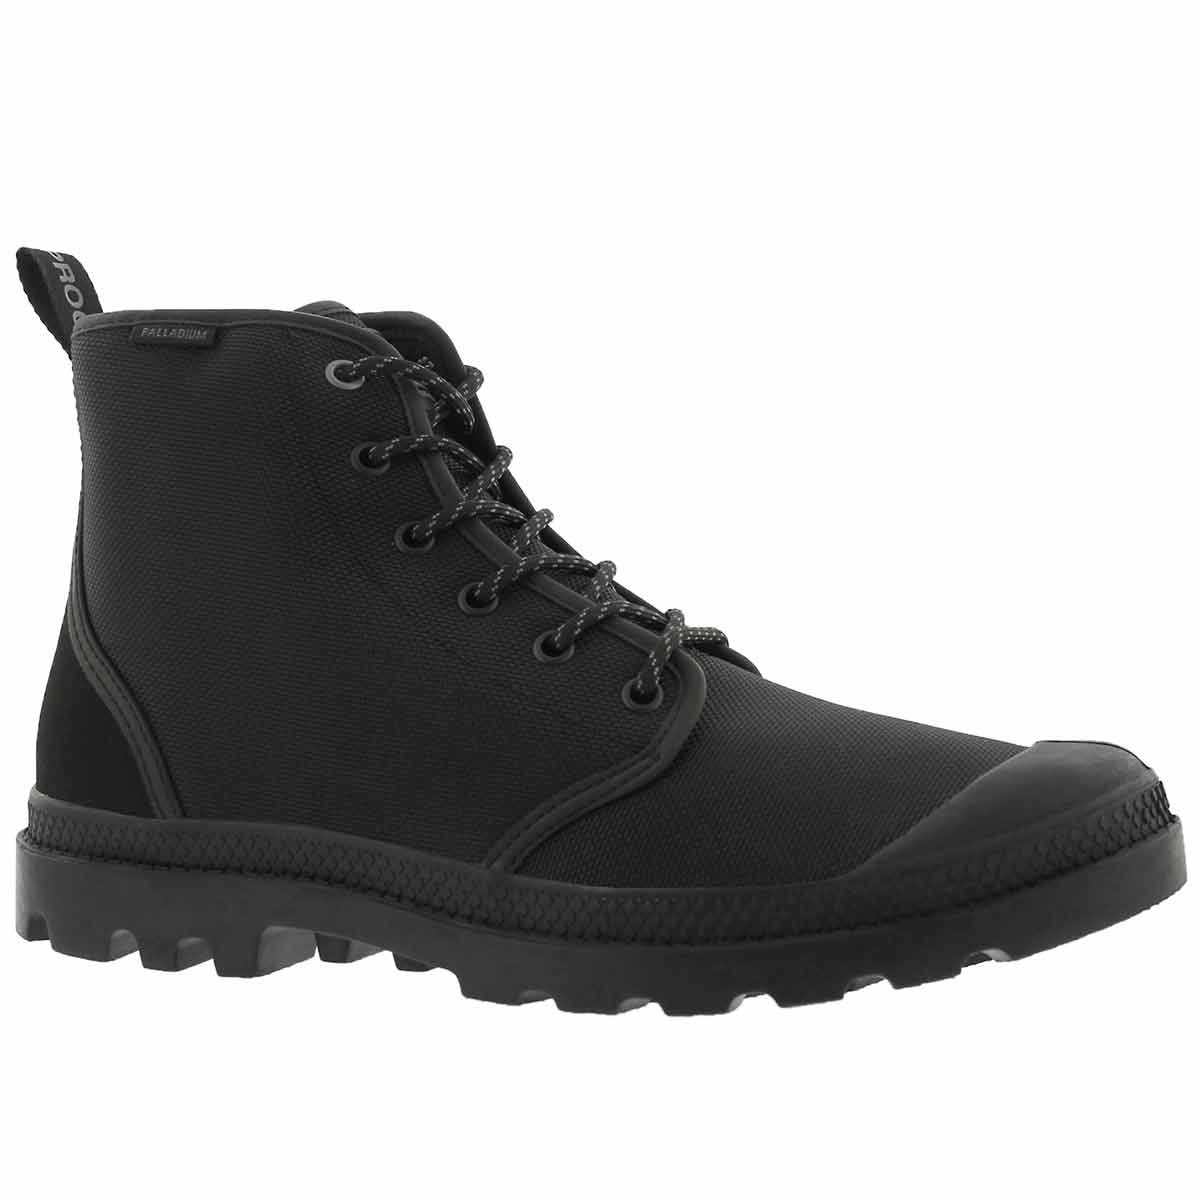 Men's PAMPA HI ORIGINAL wp black ankle boots